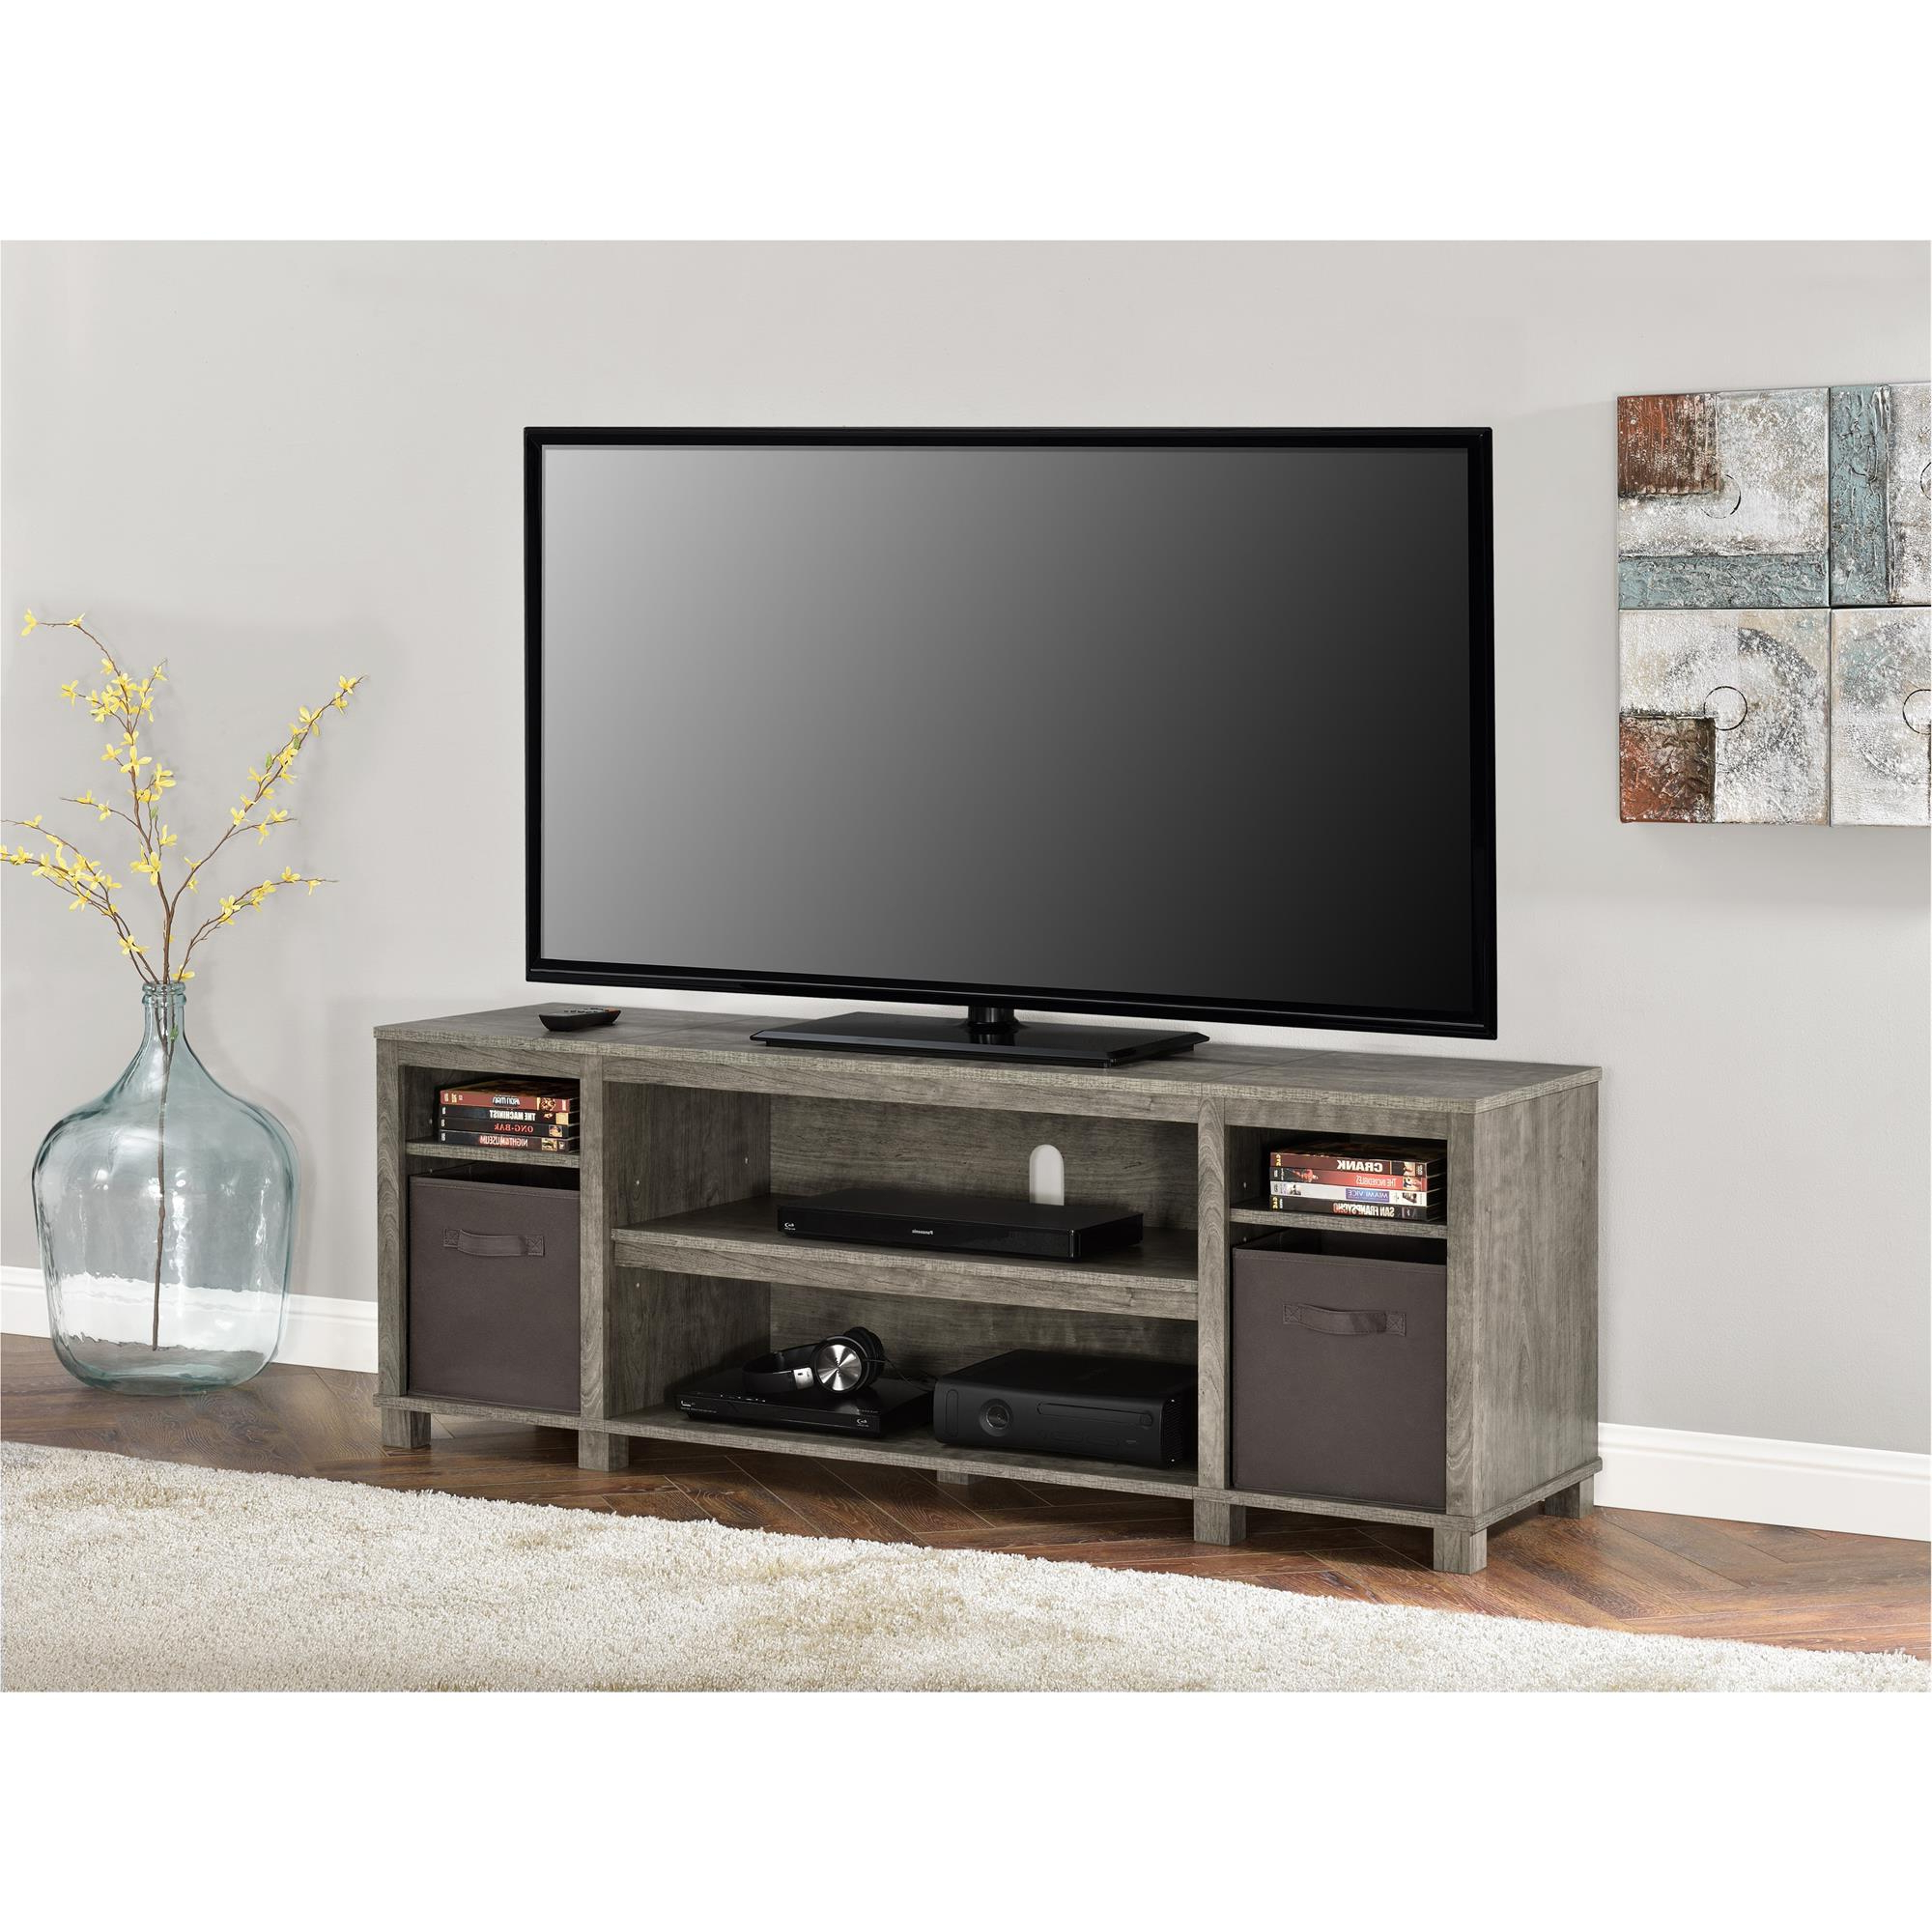 """Current Tv Stands For Tvs Up To 65"""" For Mainstays Tv Stand With Bins For Tvs Up To 65"""", Multiple (View 8 of 22)"""